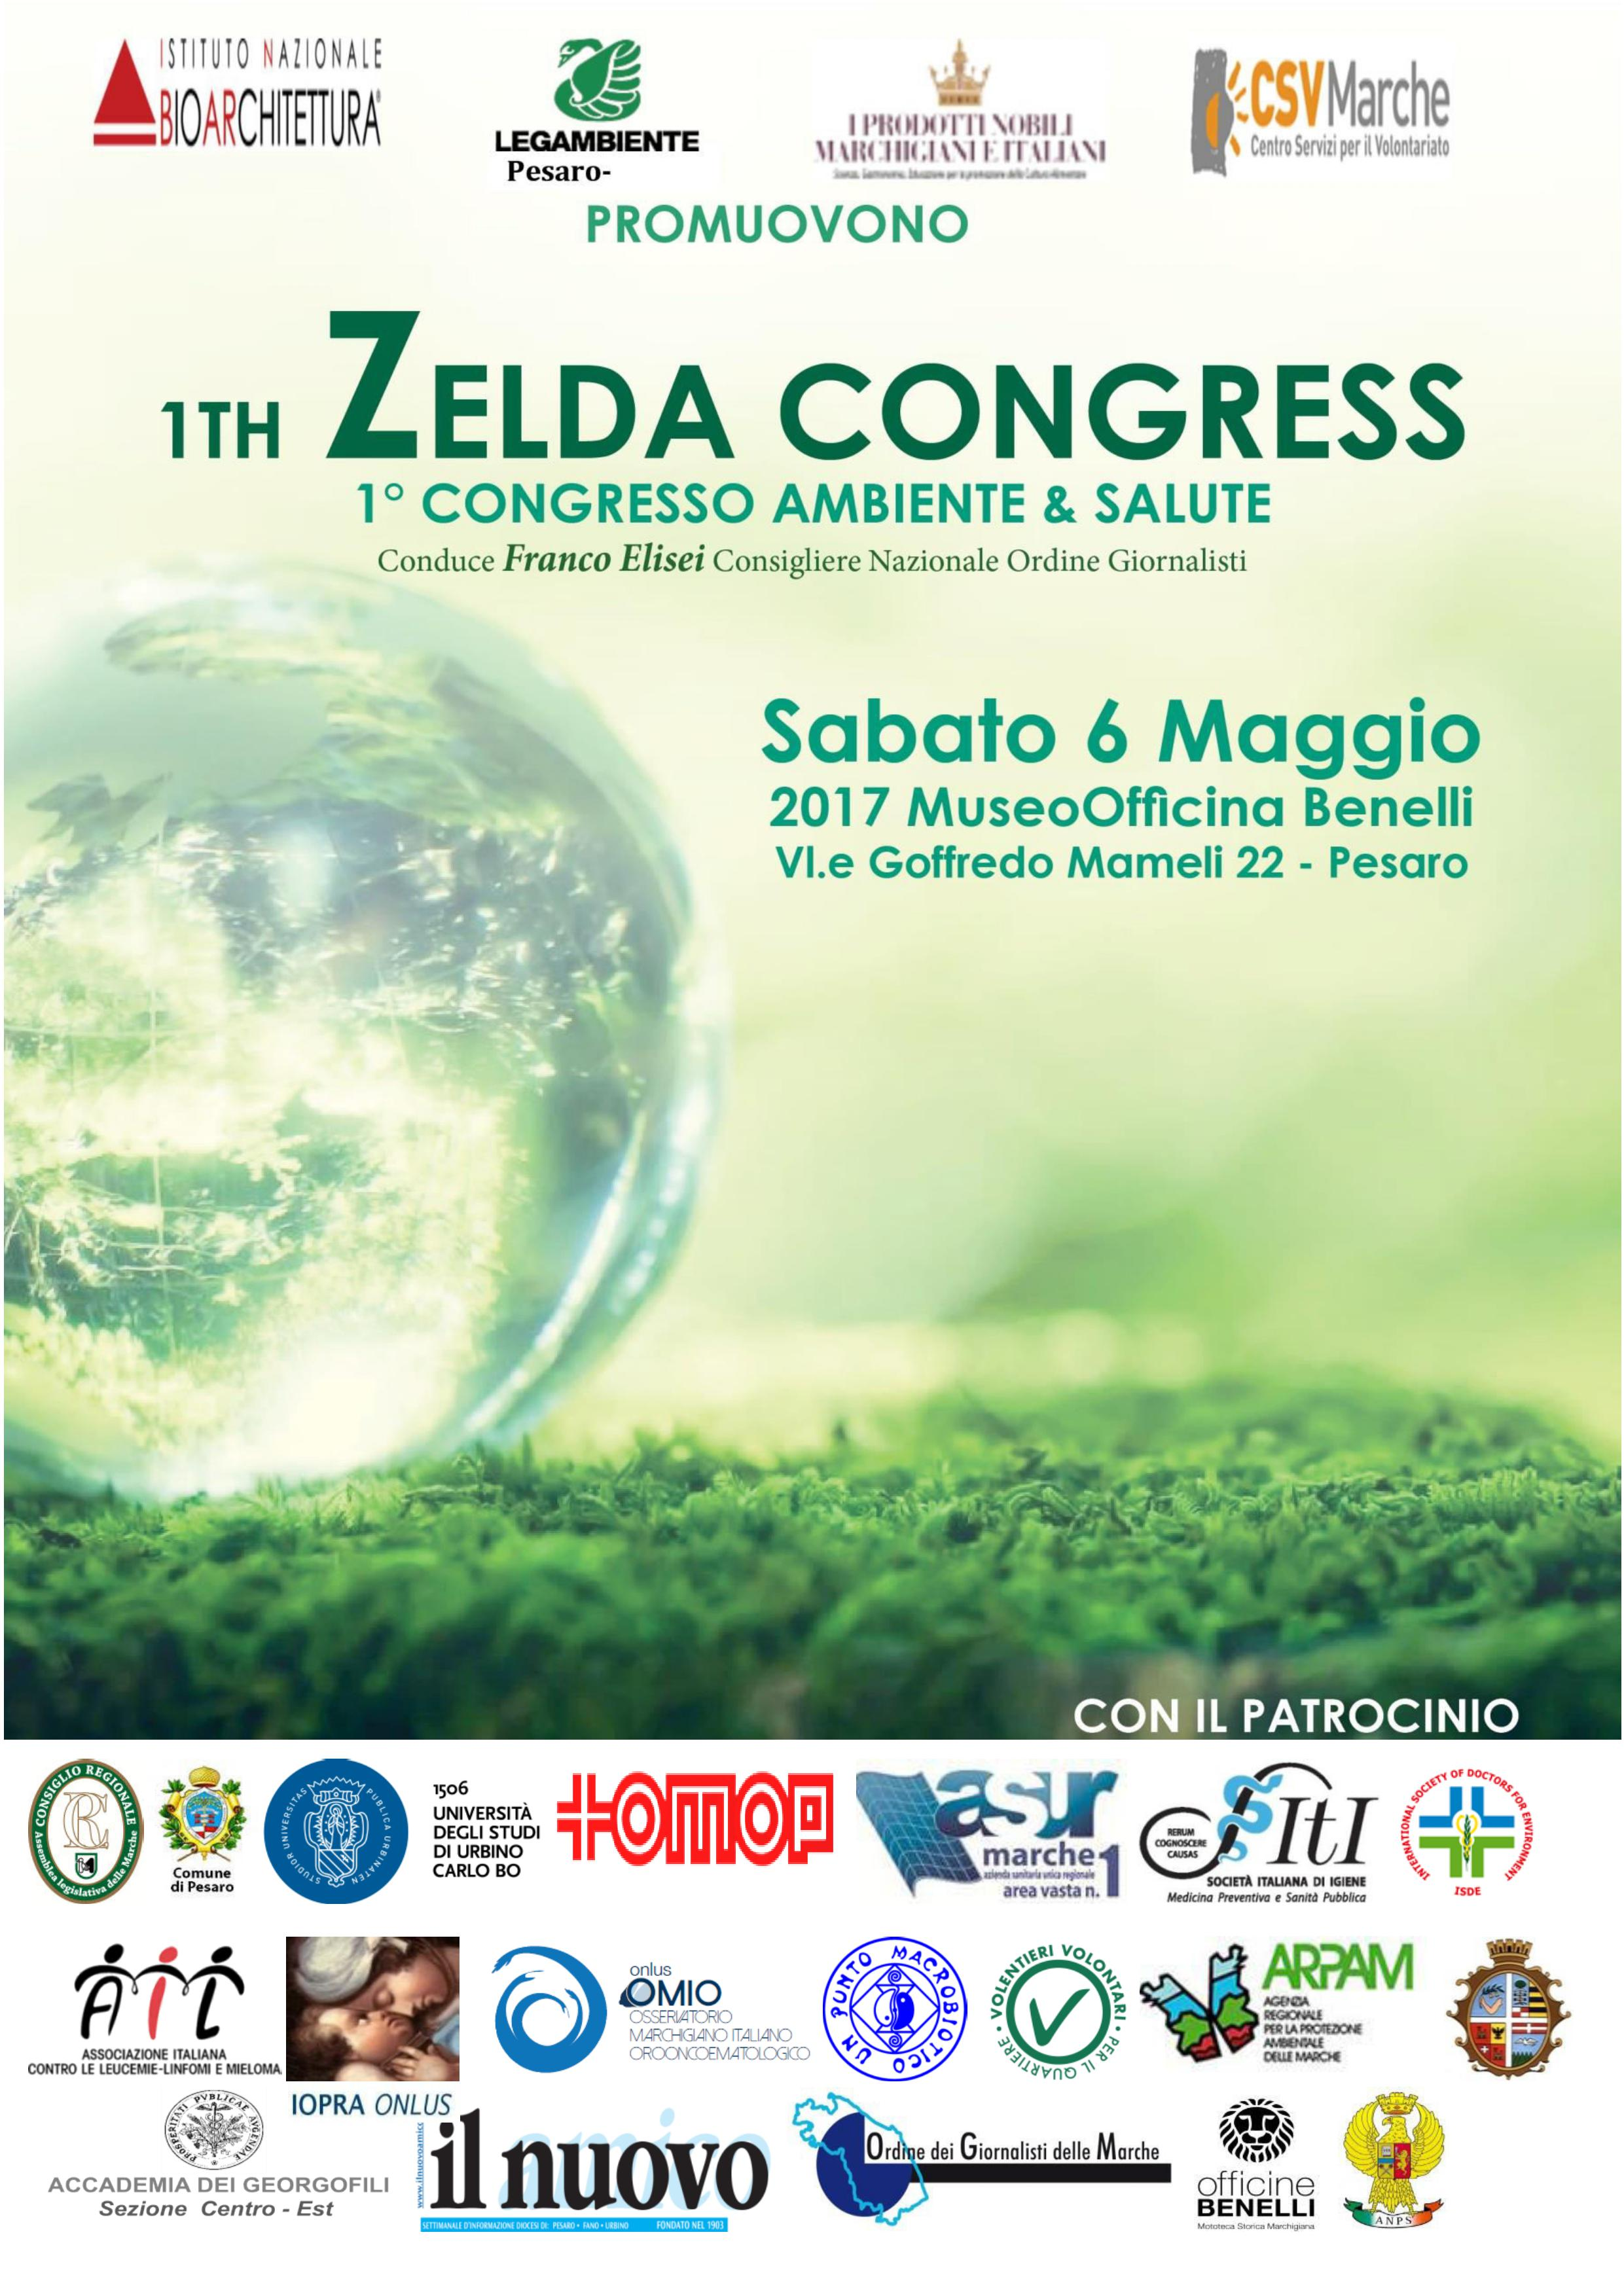 Zelda Congress